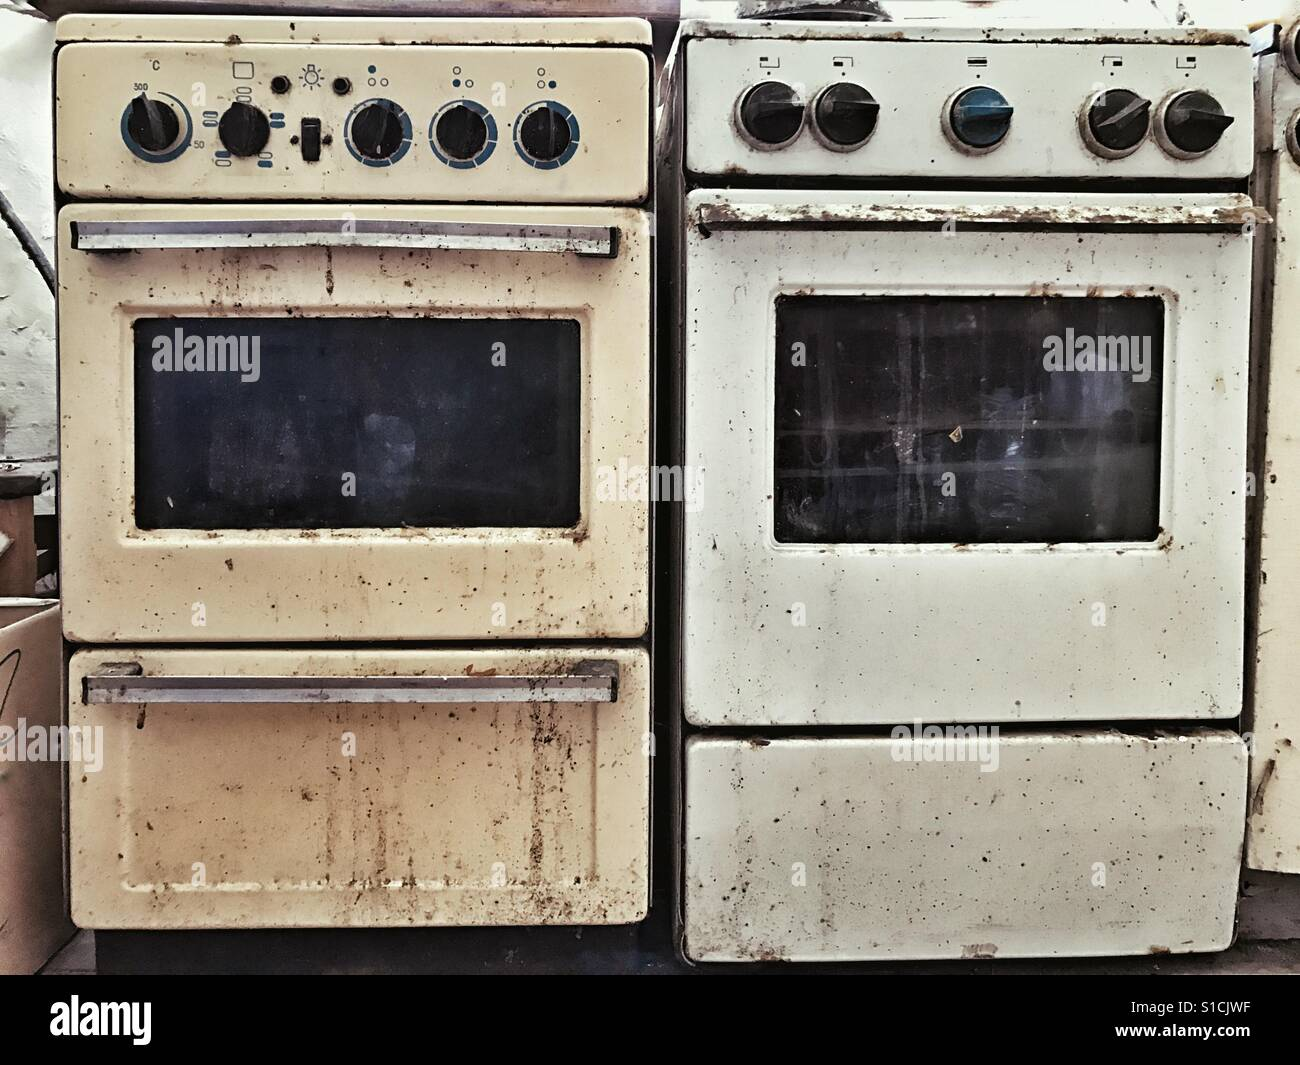 Old gas stoves Stock Photo